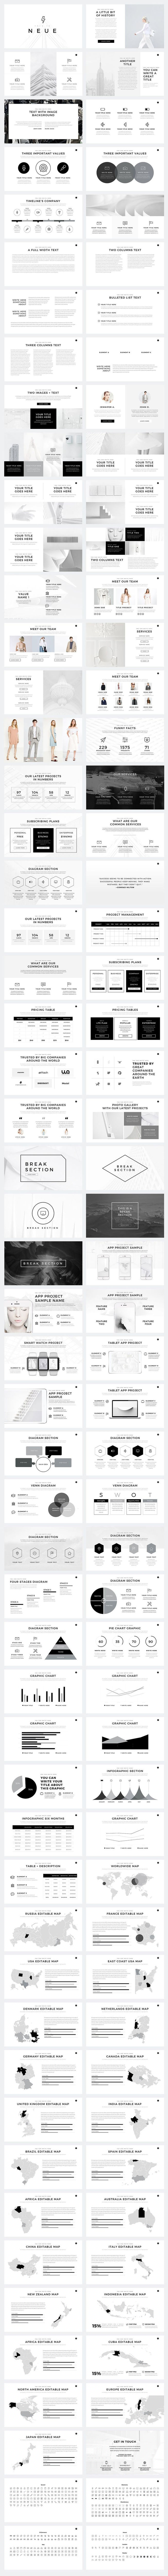 Neue Minimal PowerPoint Template by SlidePro on @creativemarket #ad